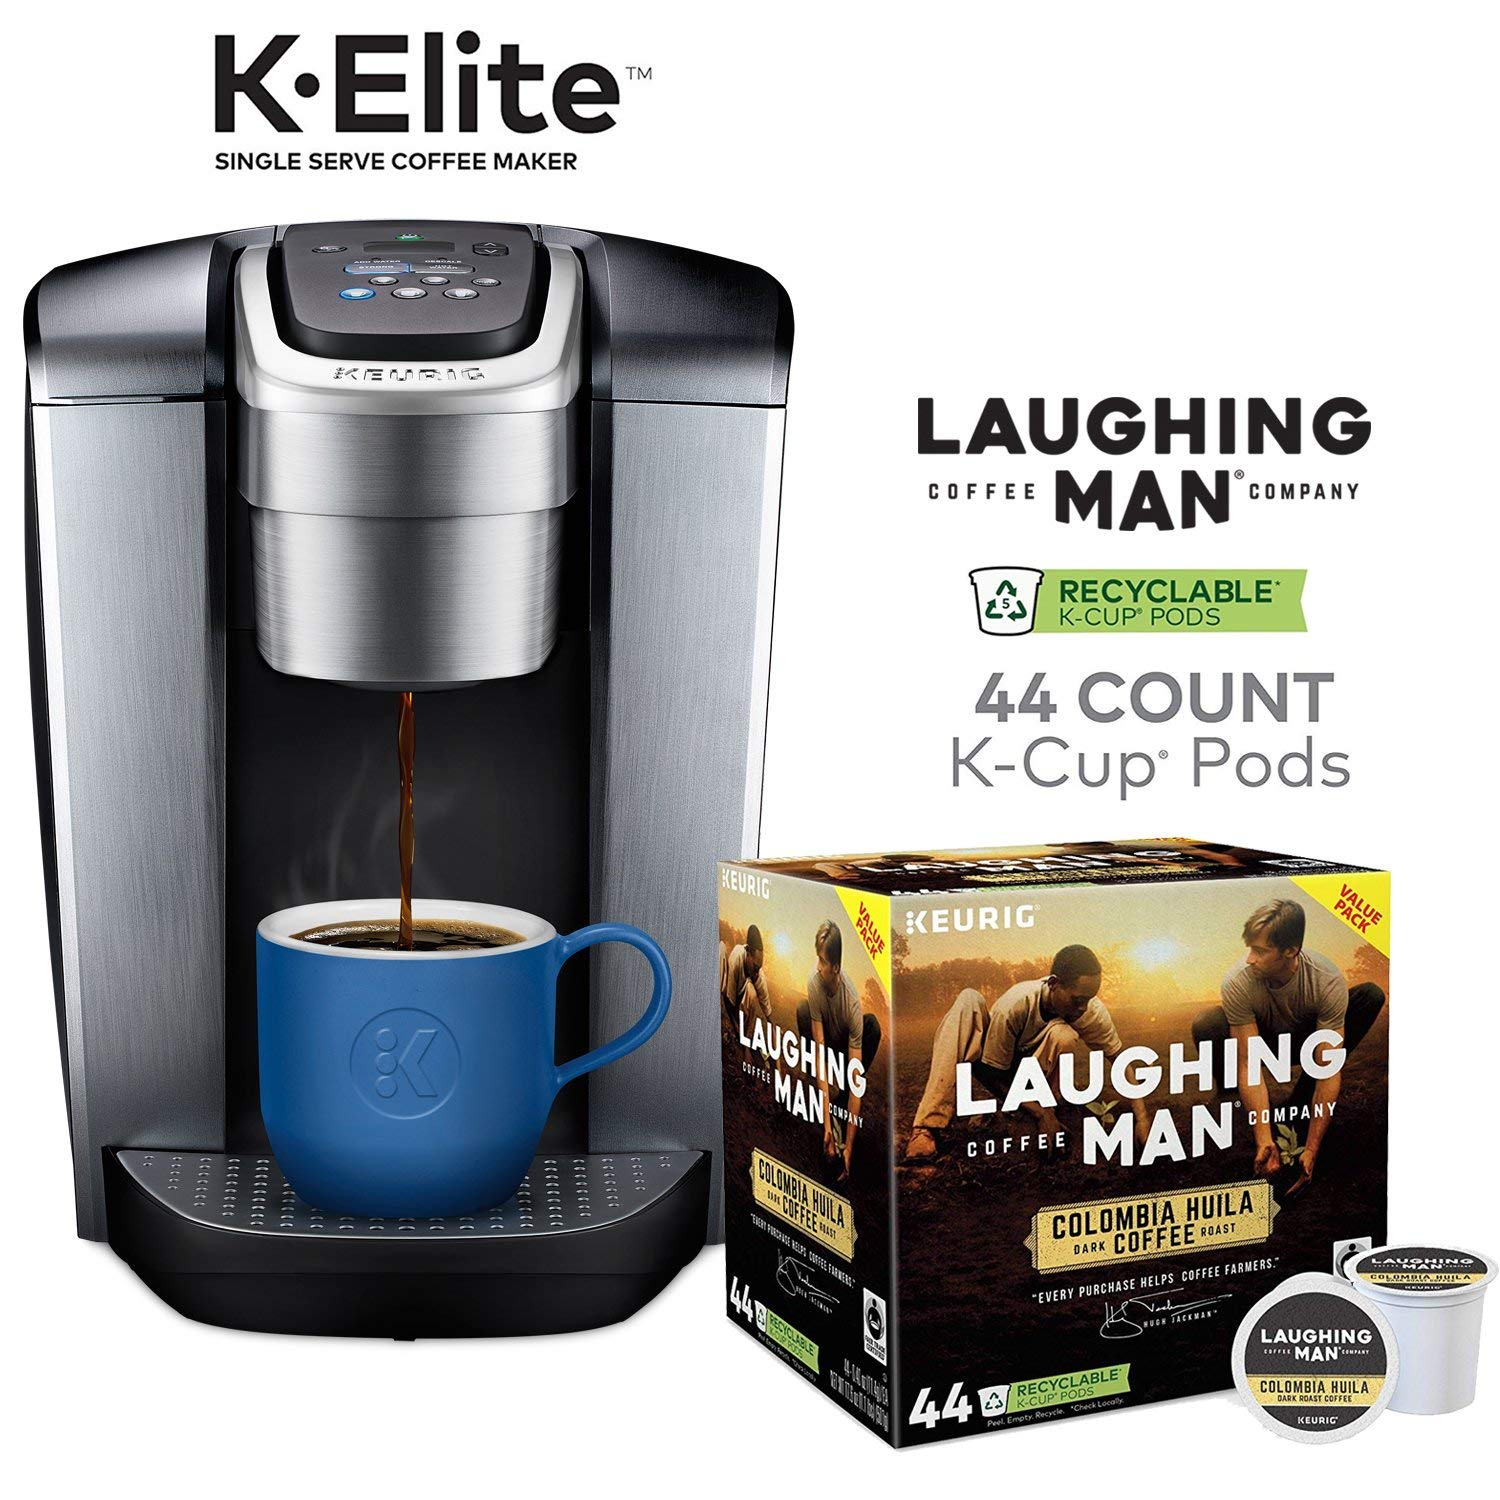 Amazon Prime Deal: Keurig K-Elite With 44 K- Cup Pods Only $99.99 + FREE Shipping